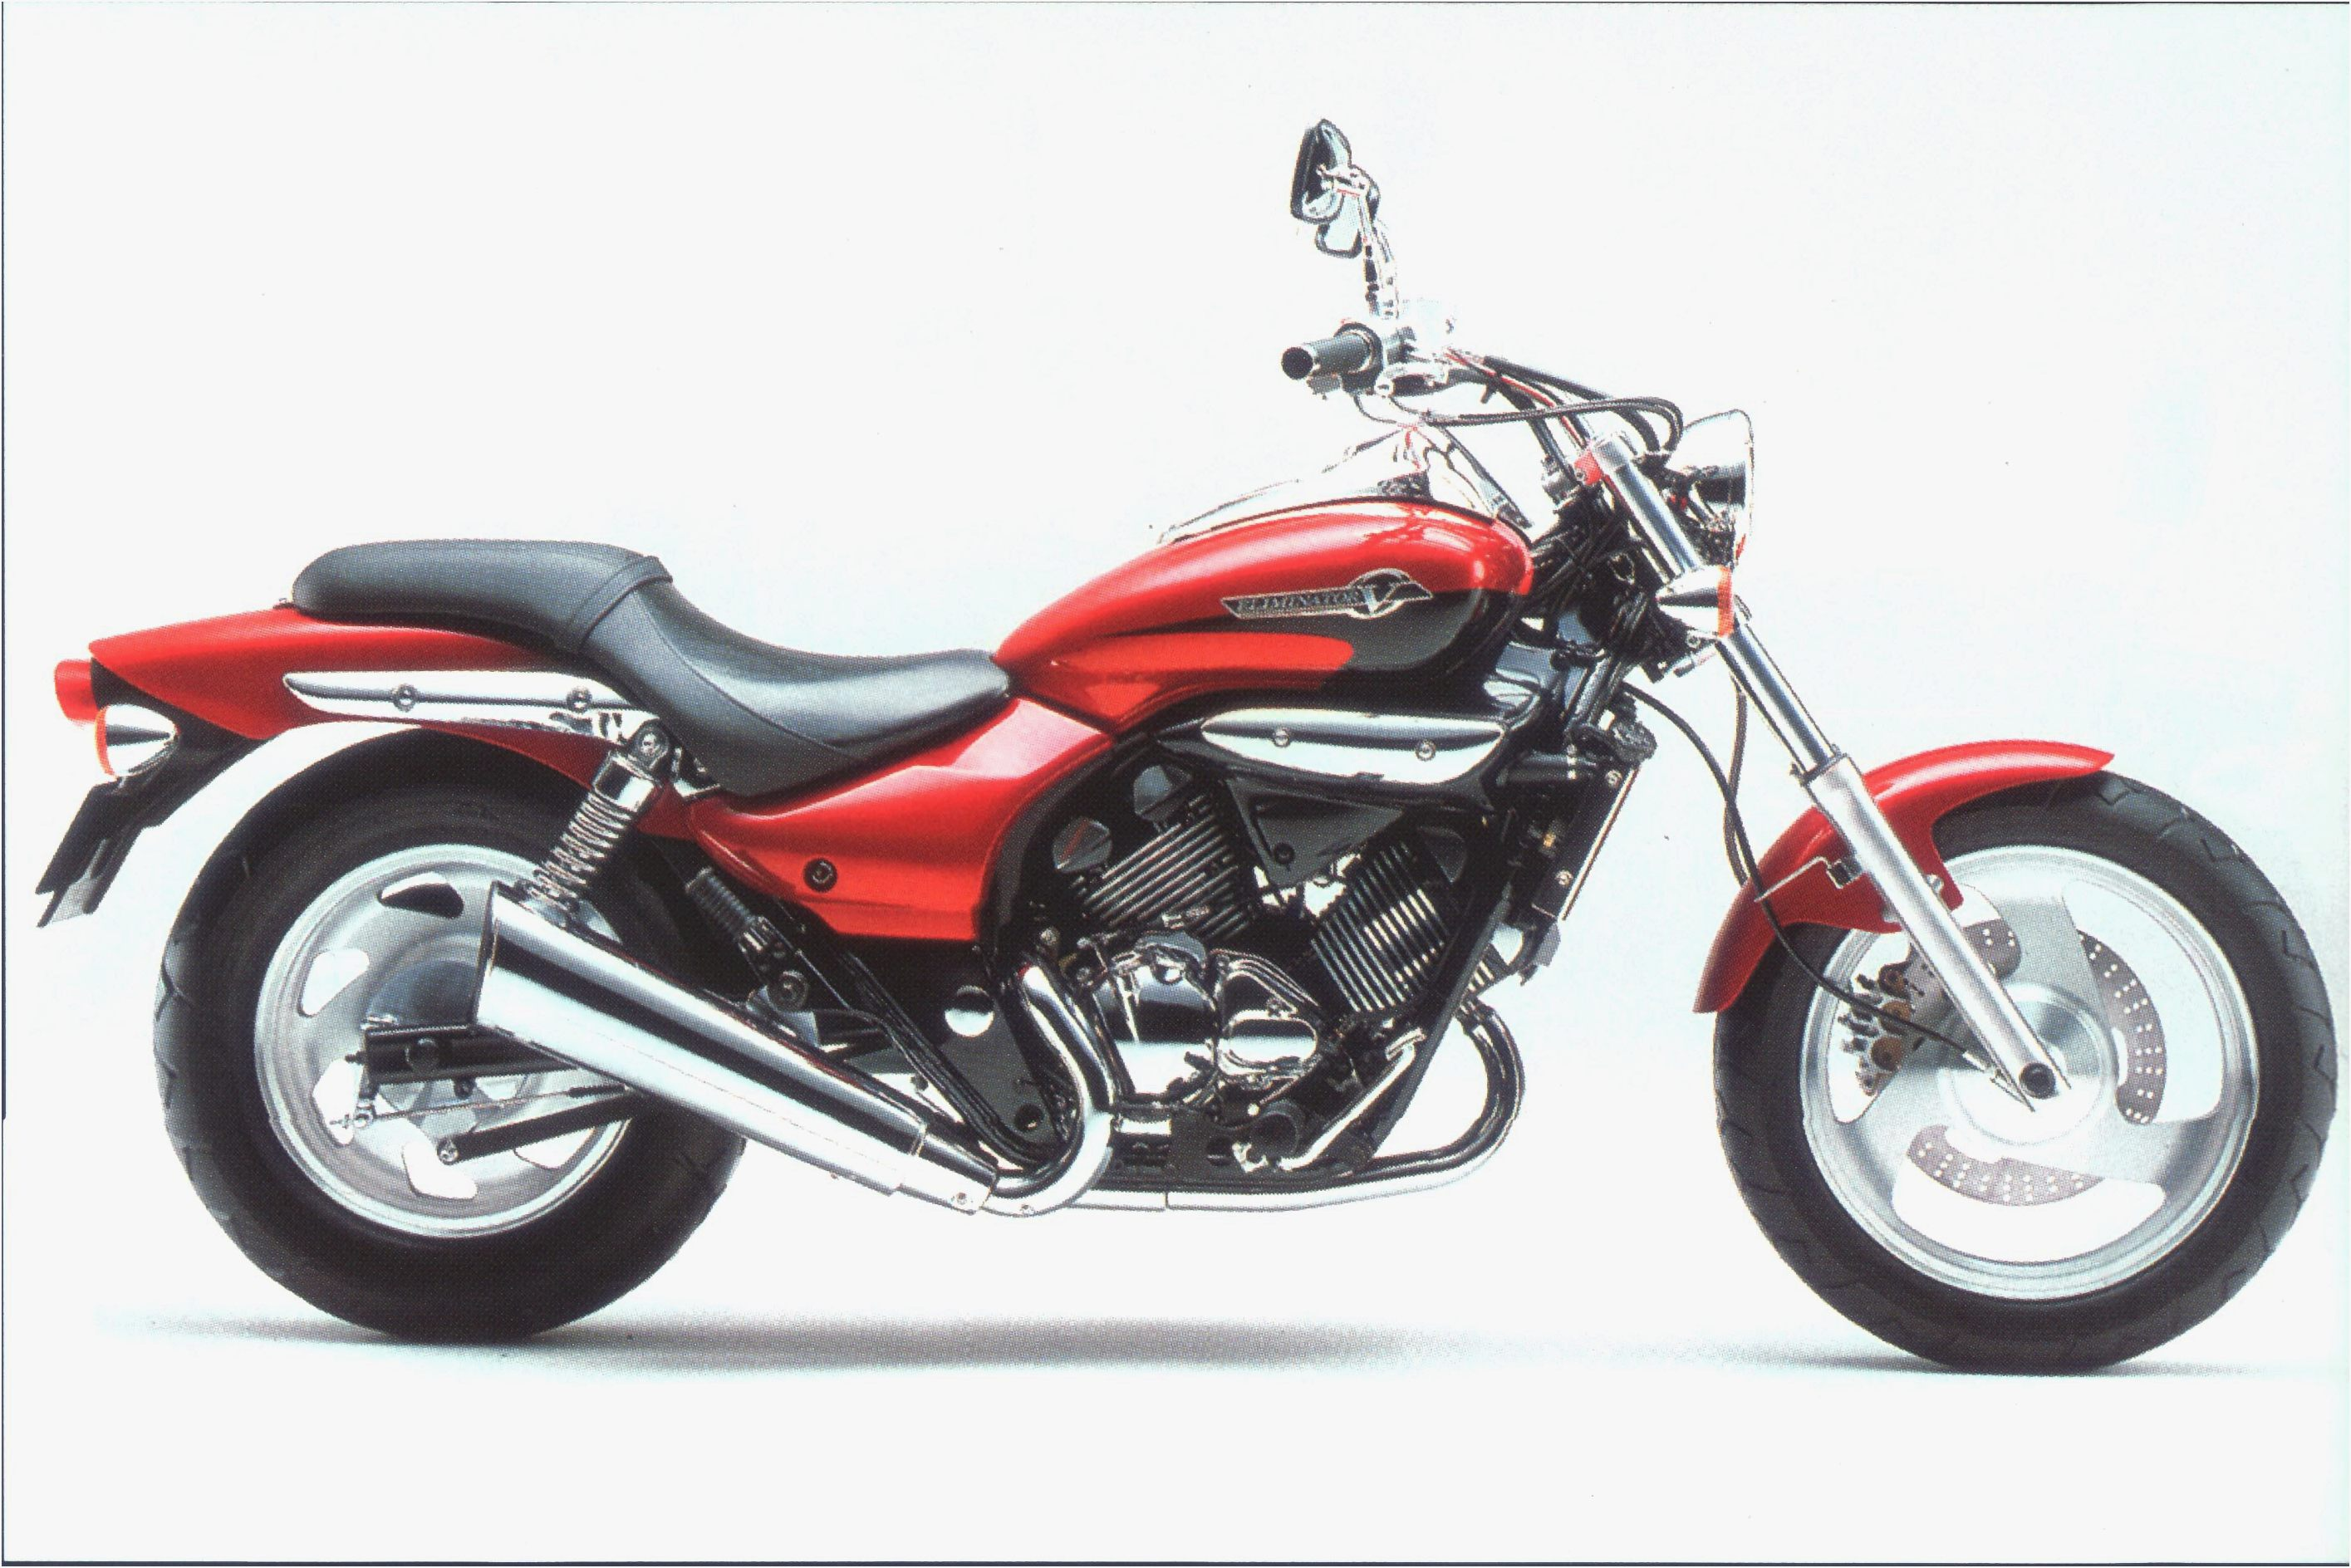 Kawasaki EL 252 Eliminator images #84501